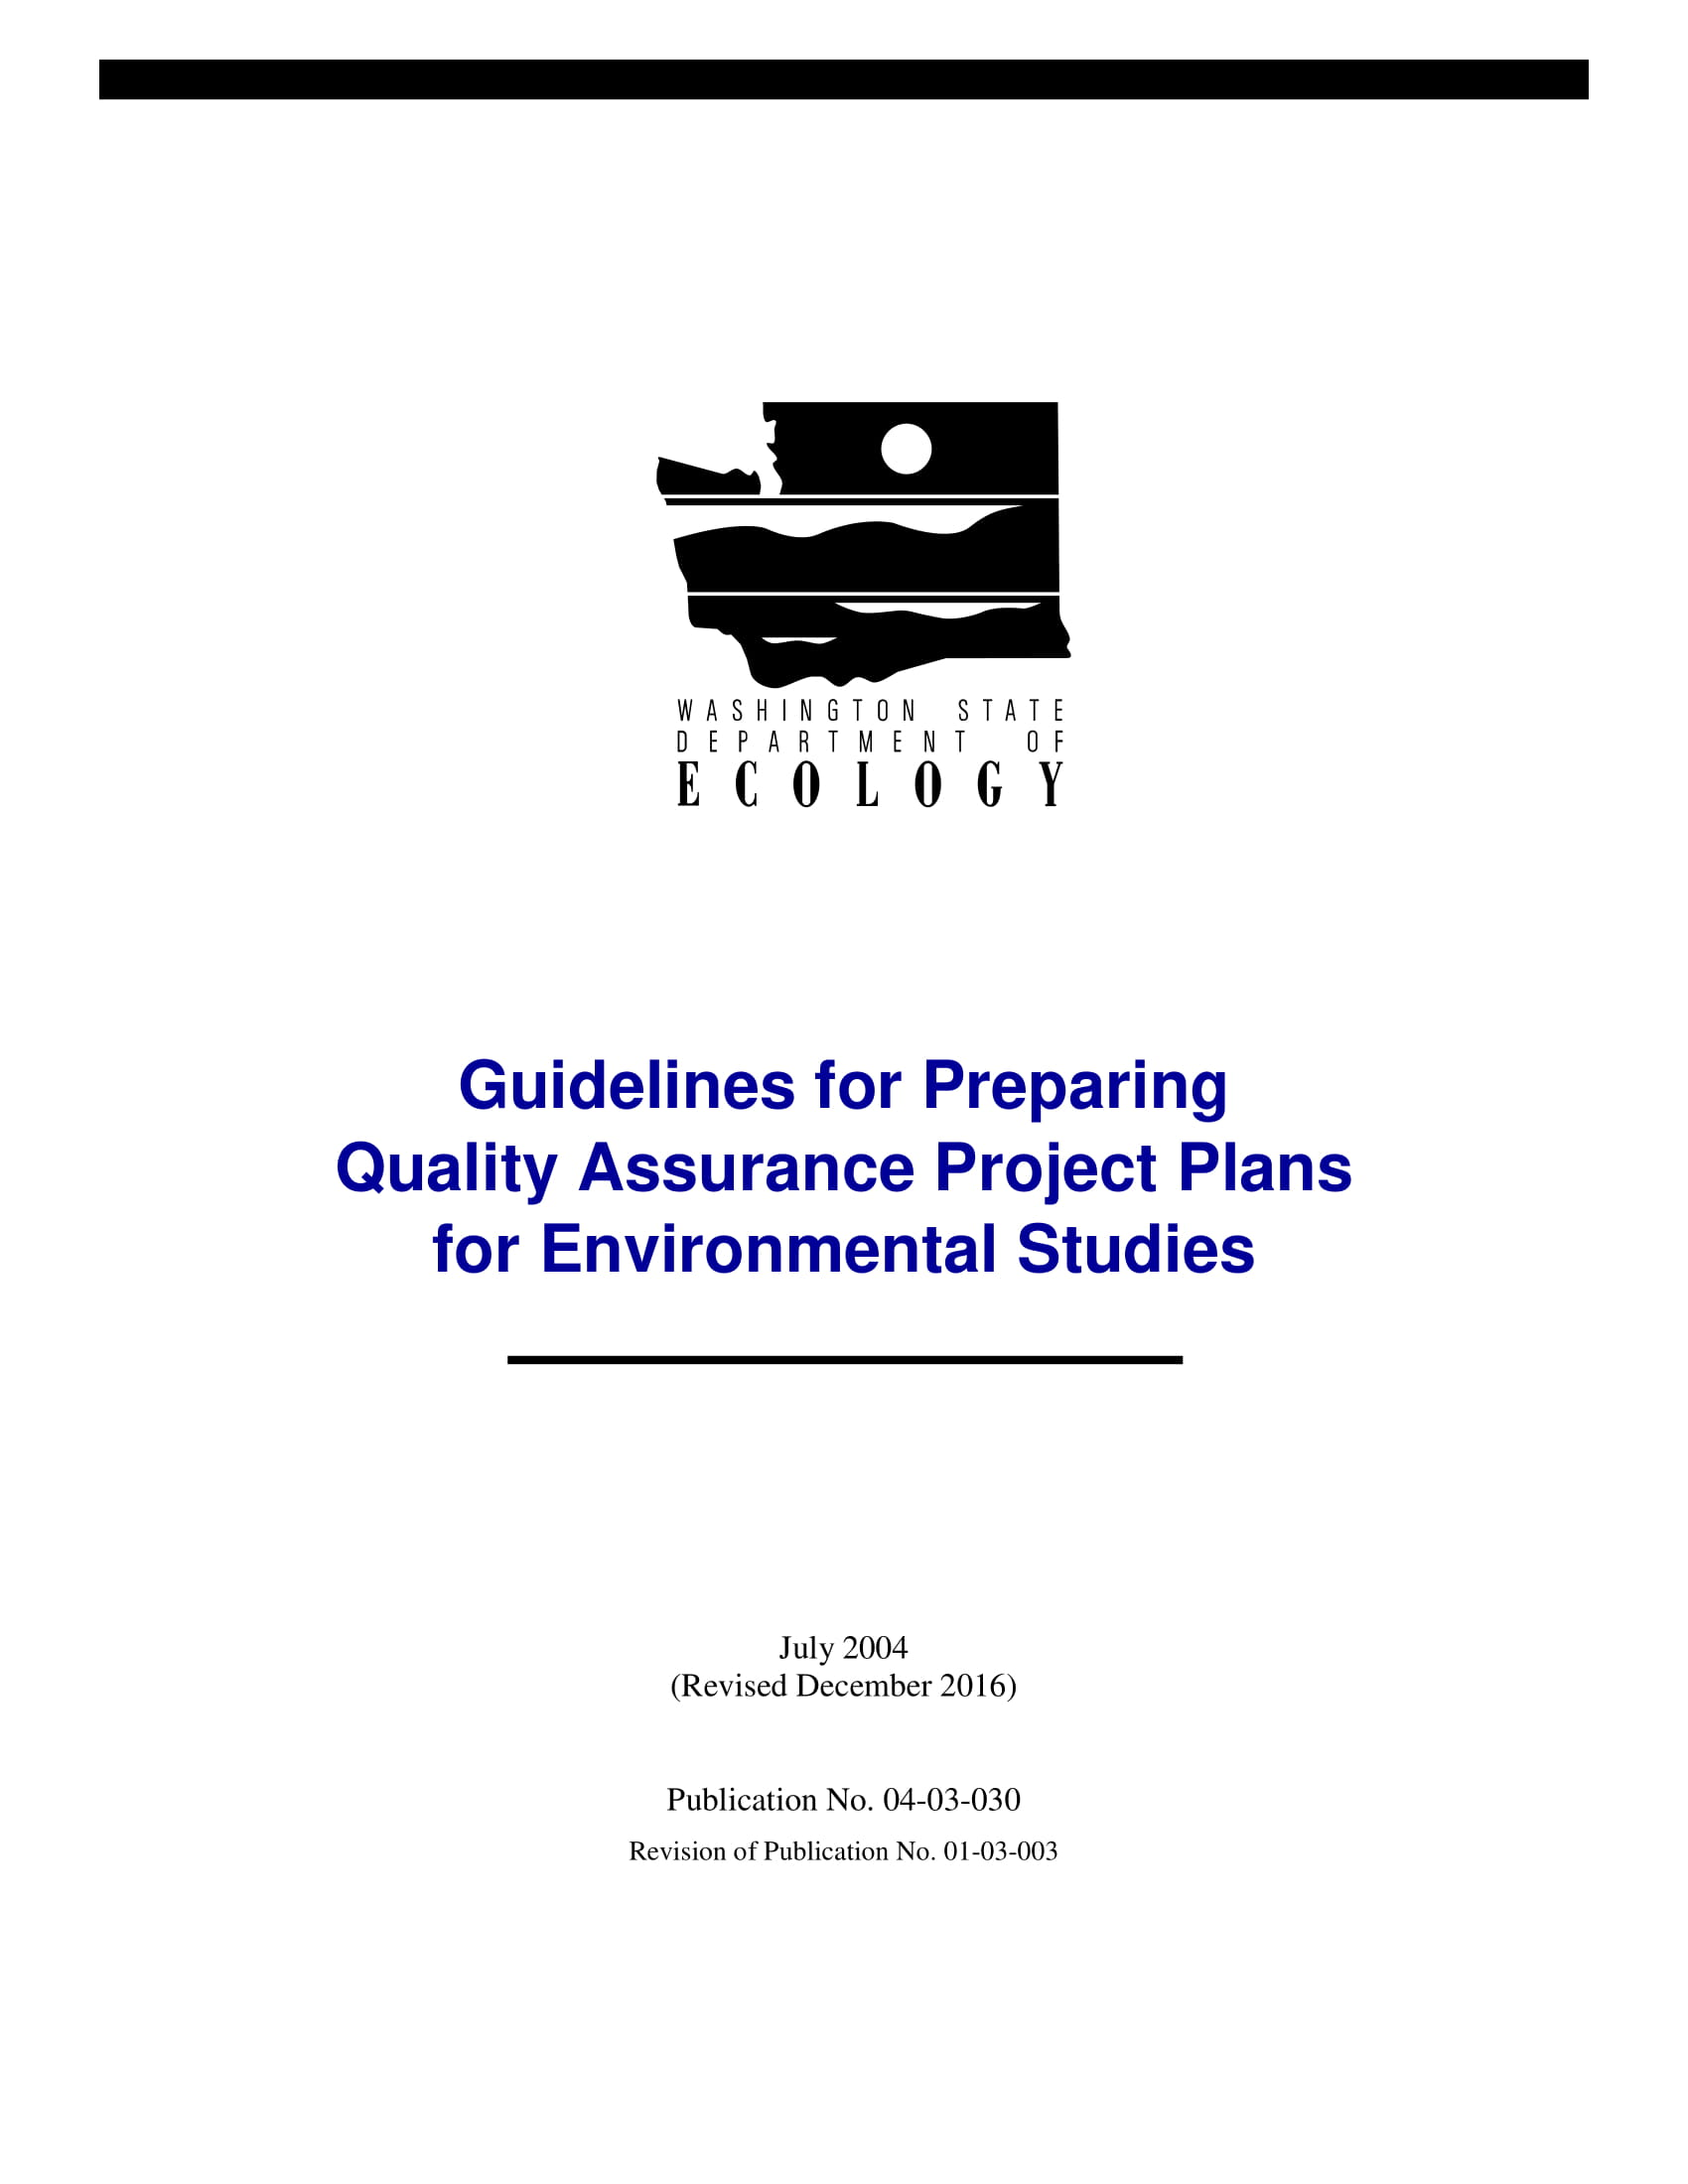 laboratory quality assurance project plan example 0011